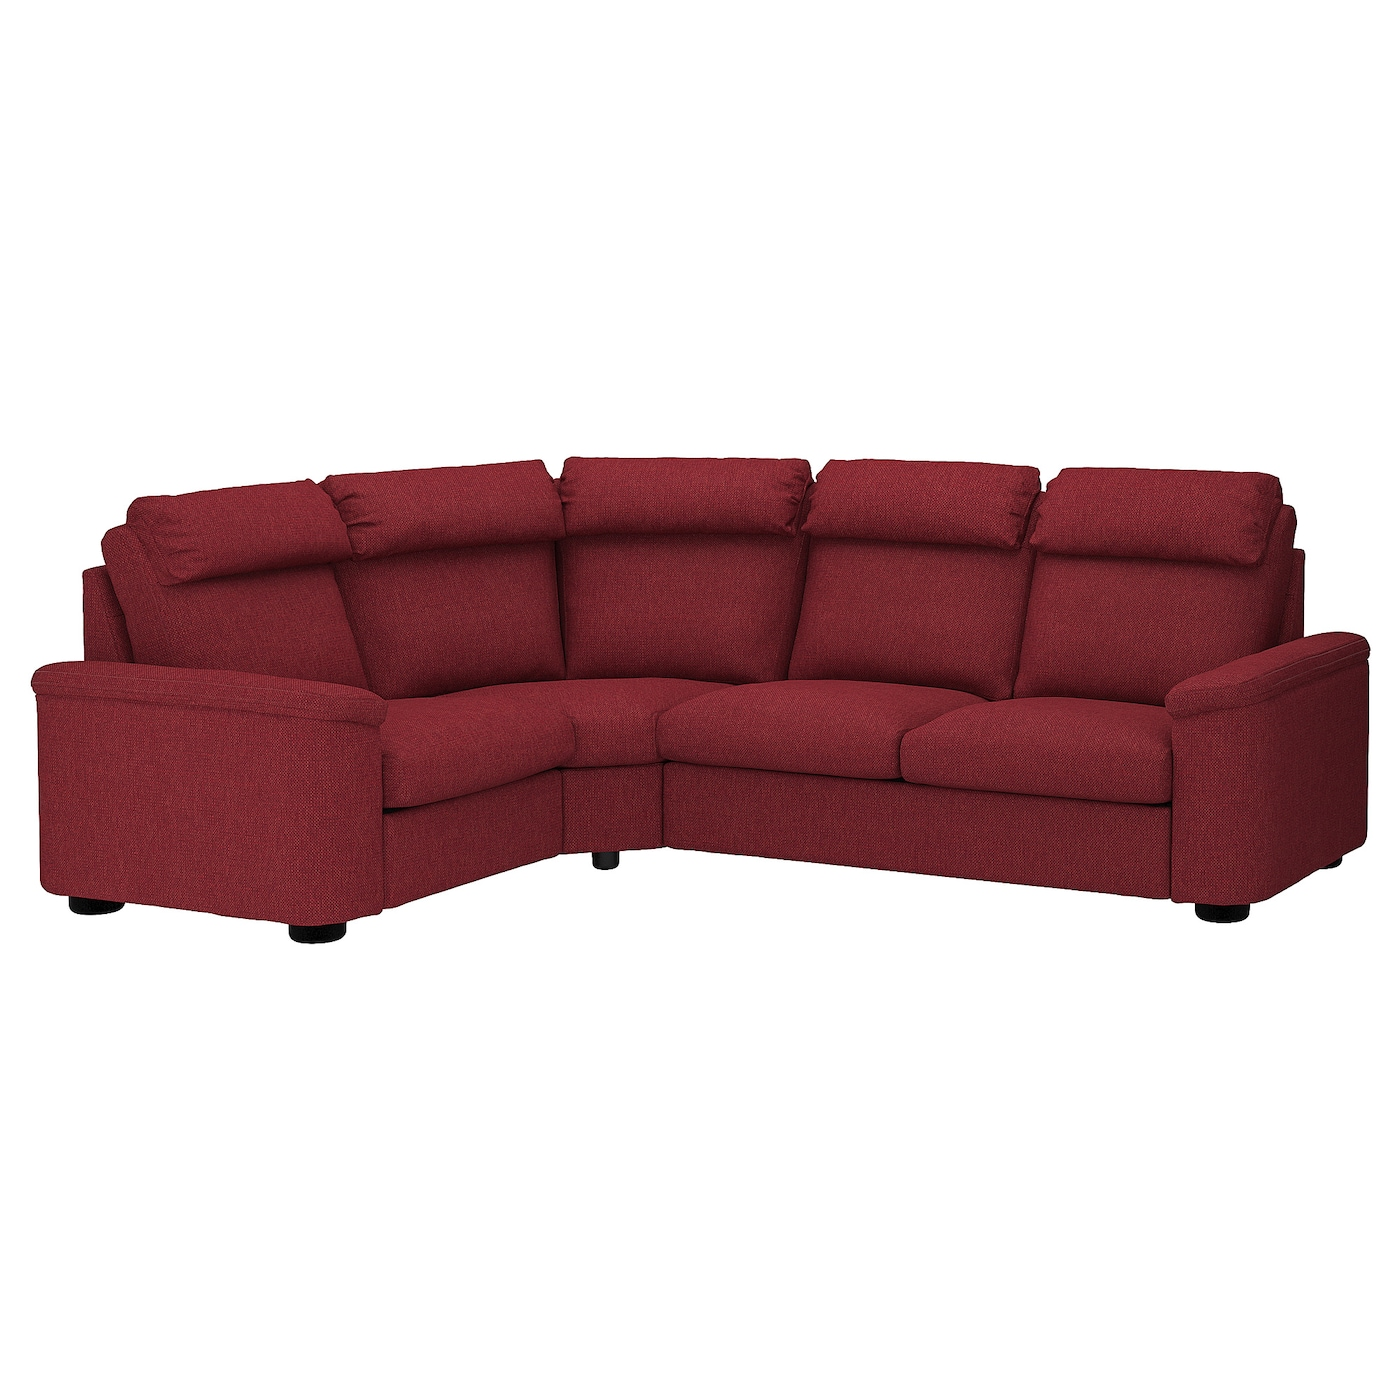 Ikea Lidhult Corner Sofa 4 Seat 10 Year Guarantee Read About The Terms